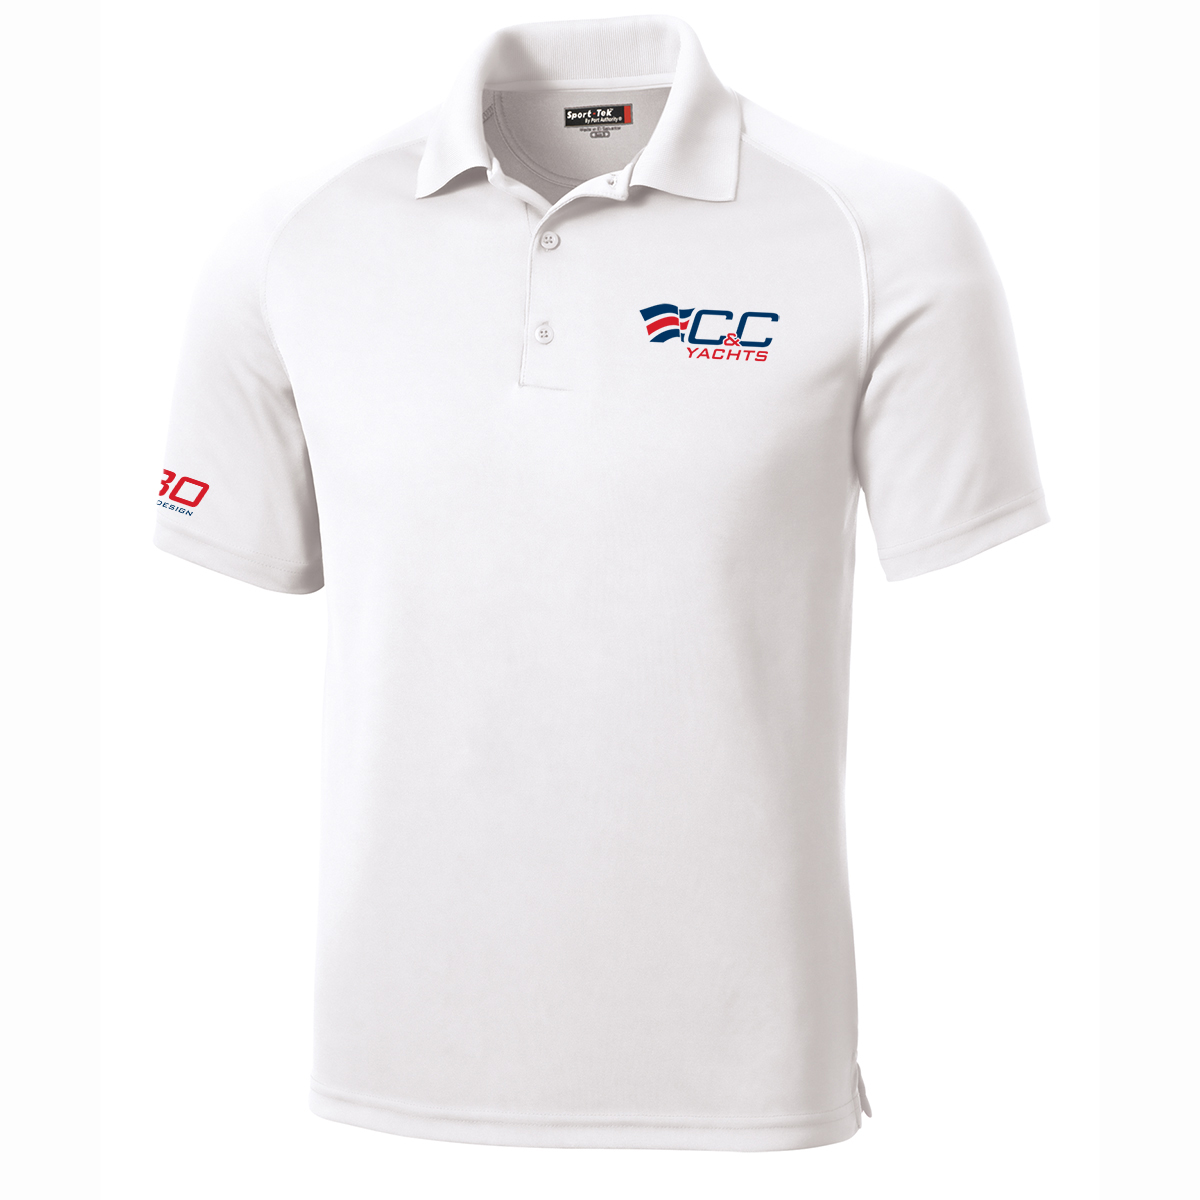 C&C Yachts-30 One Design - Men's Technical Polo